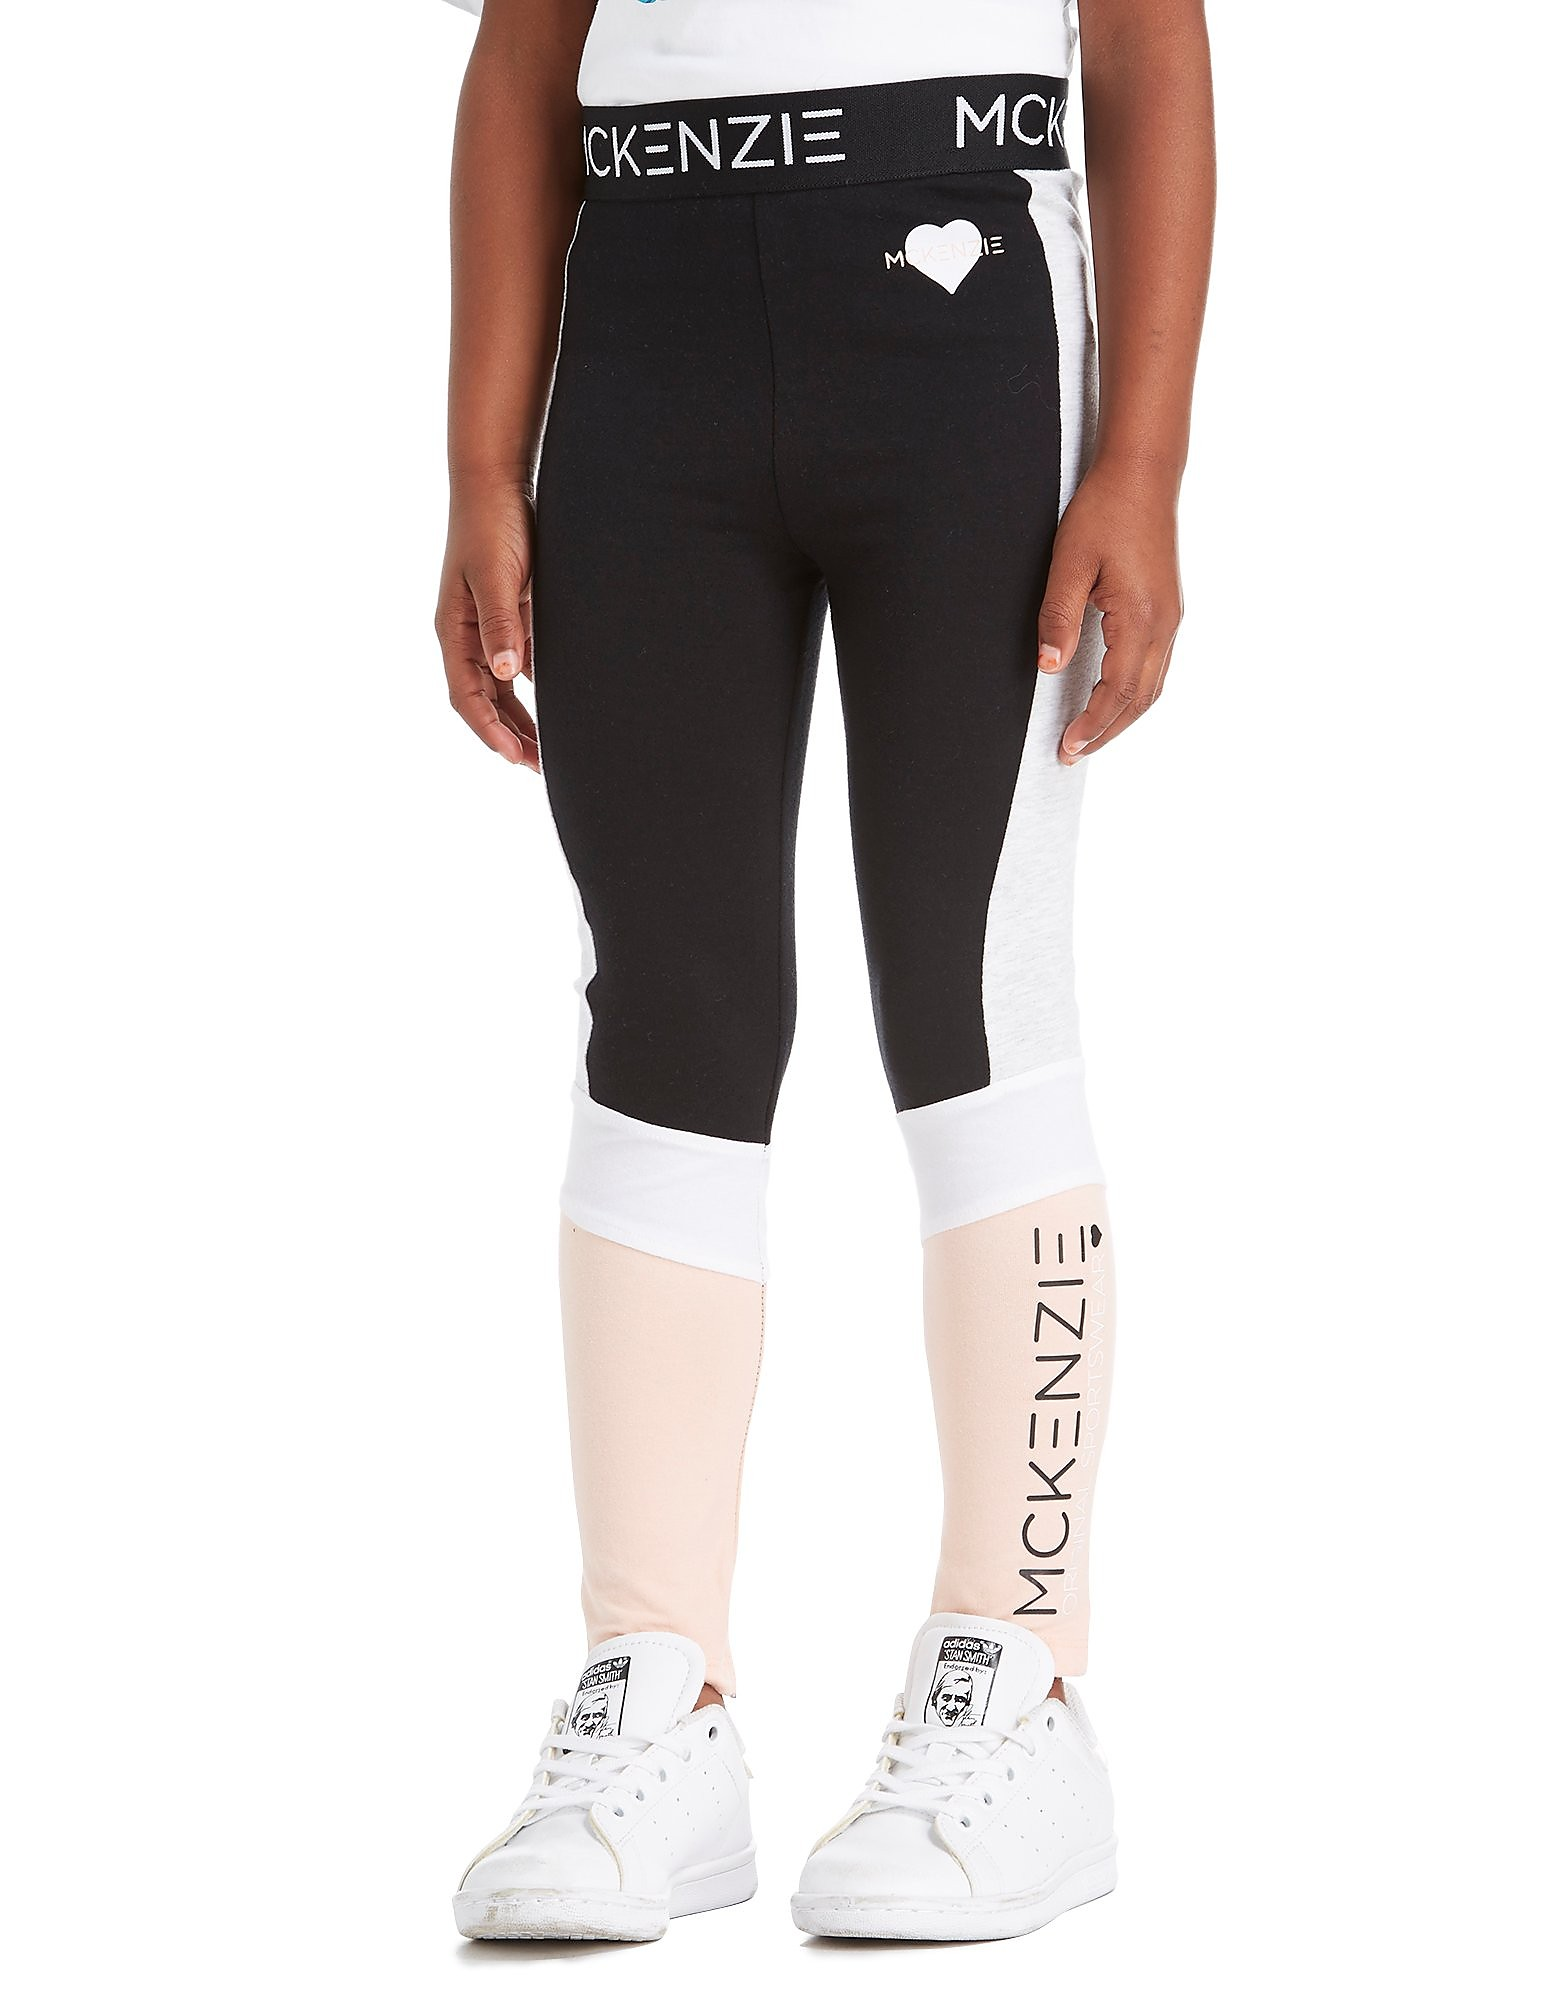 McKenzie Bronte Leggings Children